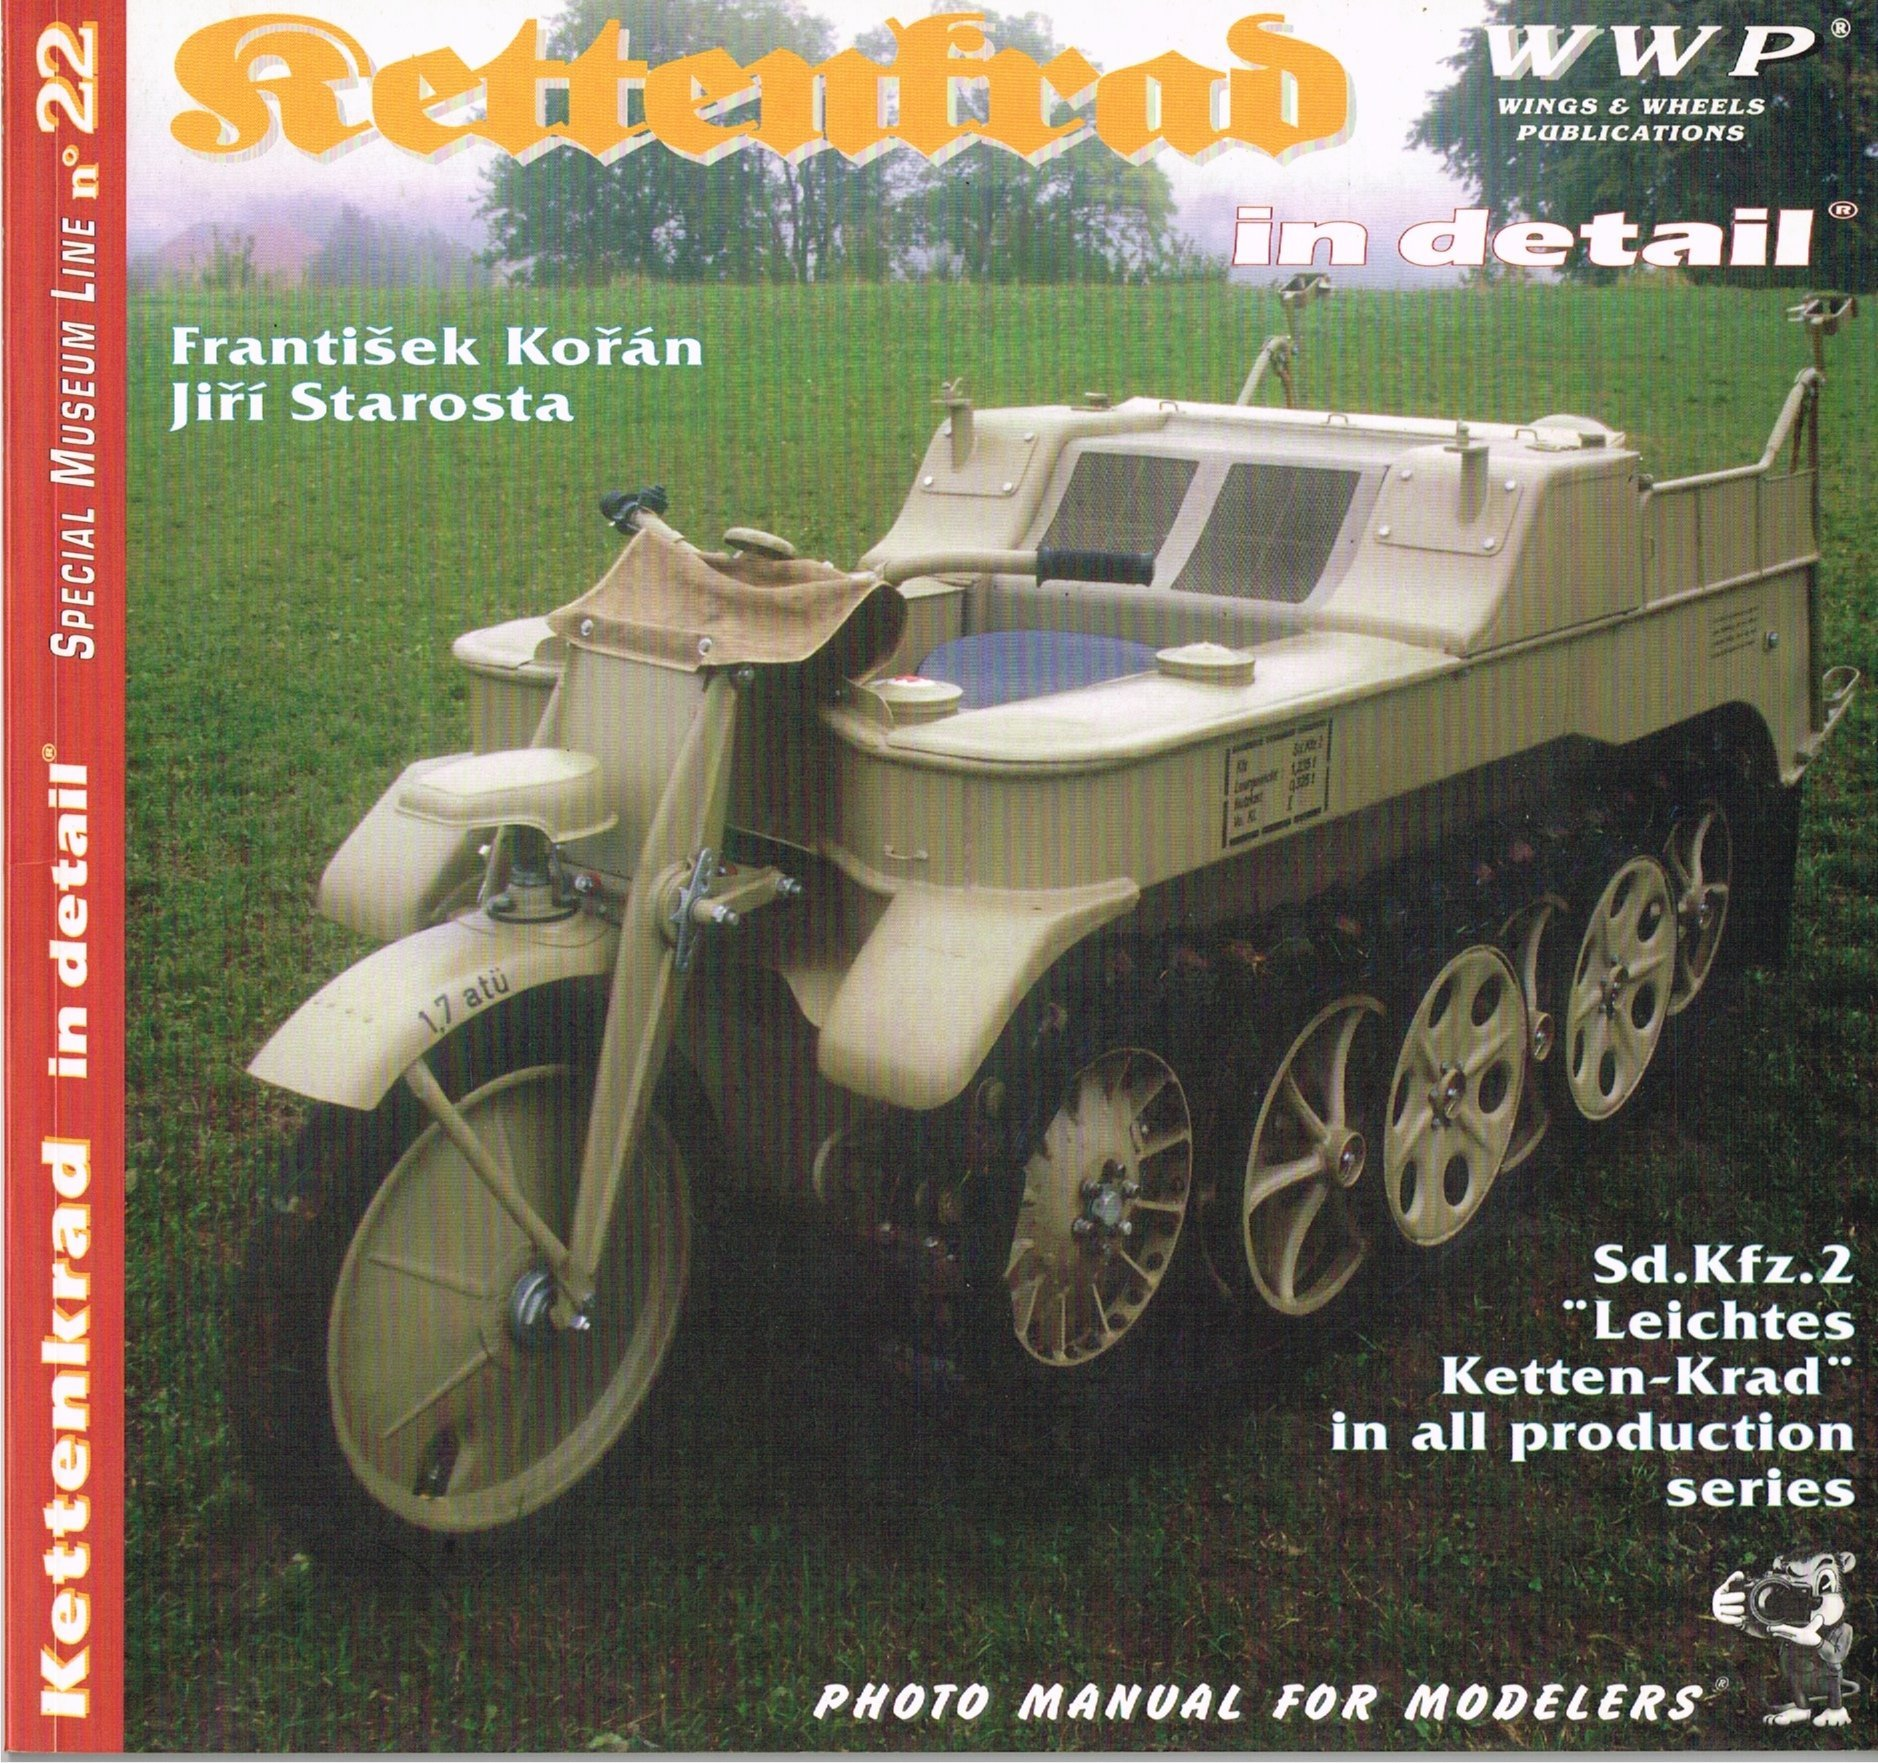 Kettenkrad in Detail - Sd.kfz.2 Leichtes Ketten-krad in All Production Series - Photo Manual for Modellers No. 22 ebook